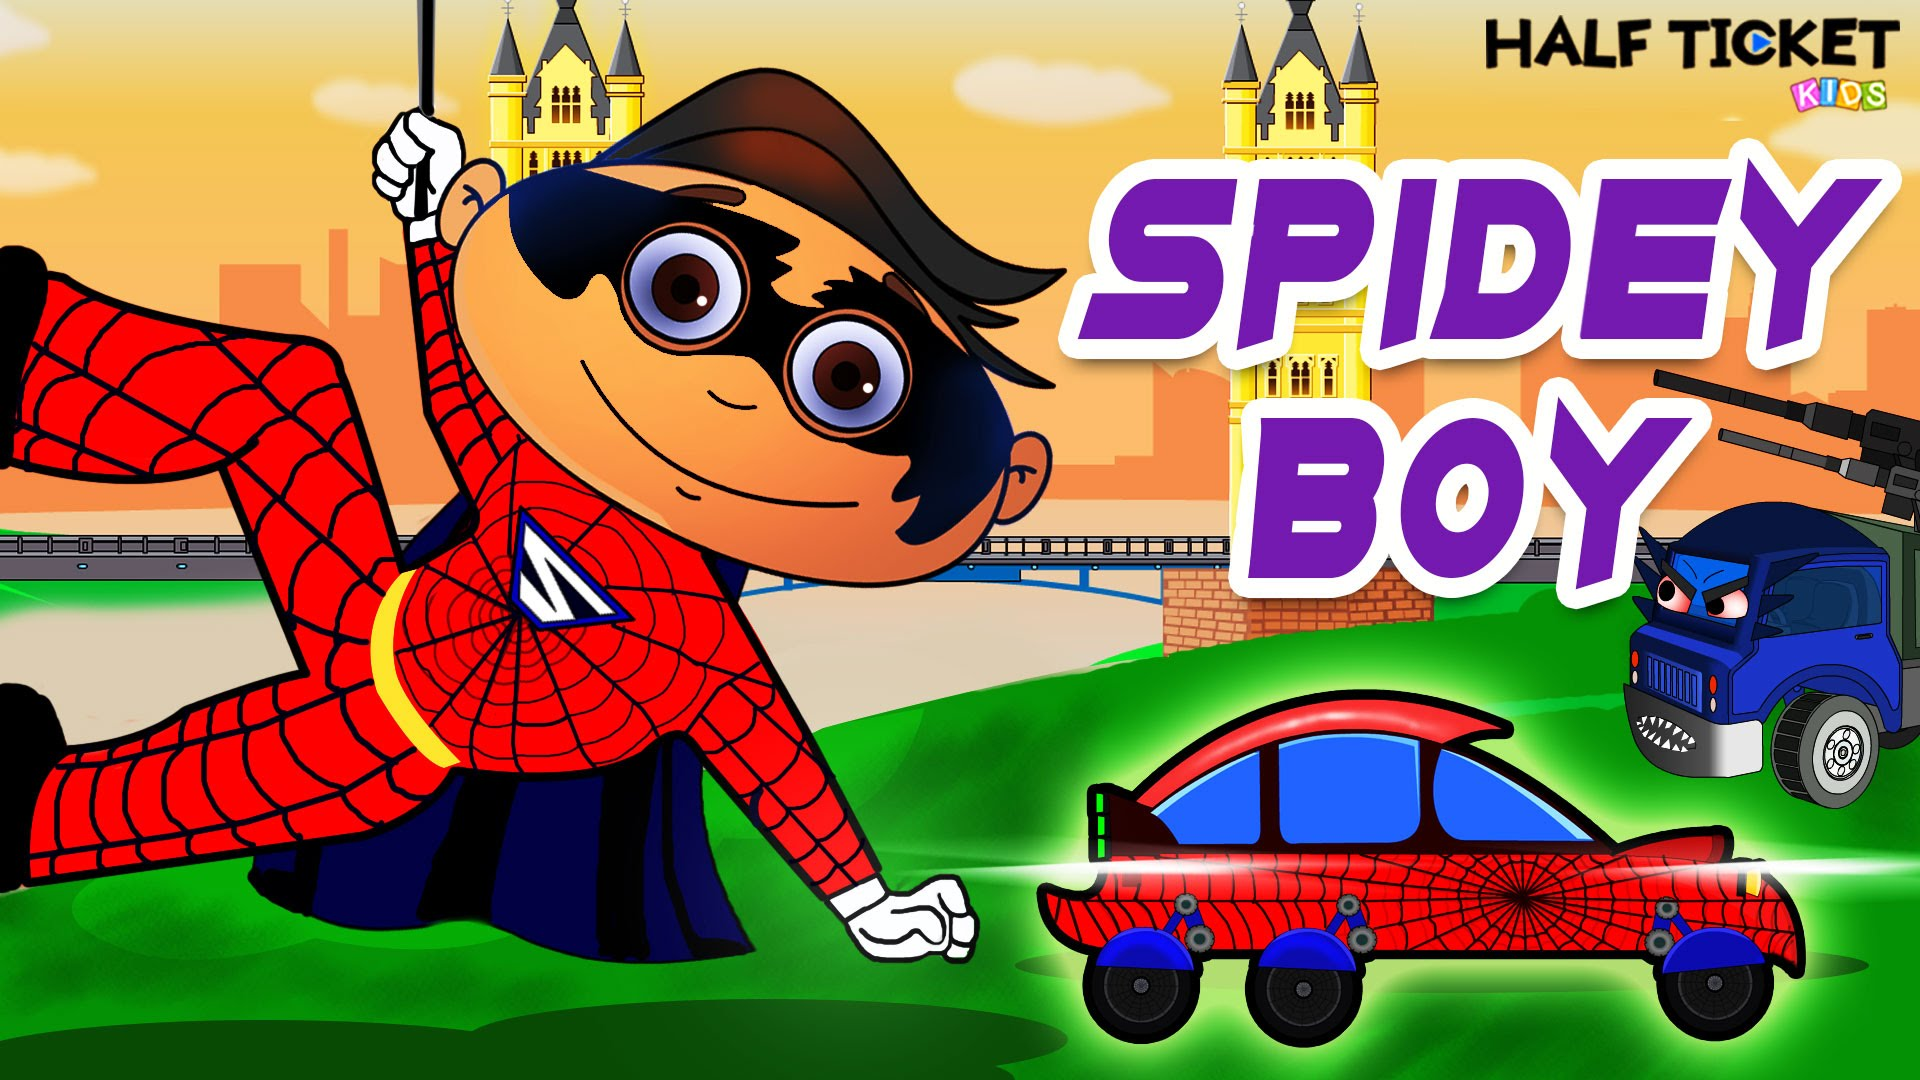 Spiderman clipart little boy Spiderman Spiderman Little Scary Boy